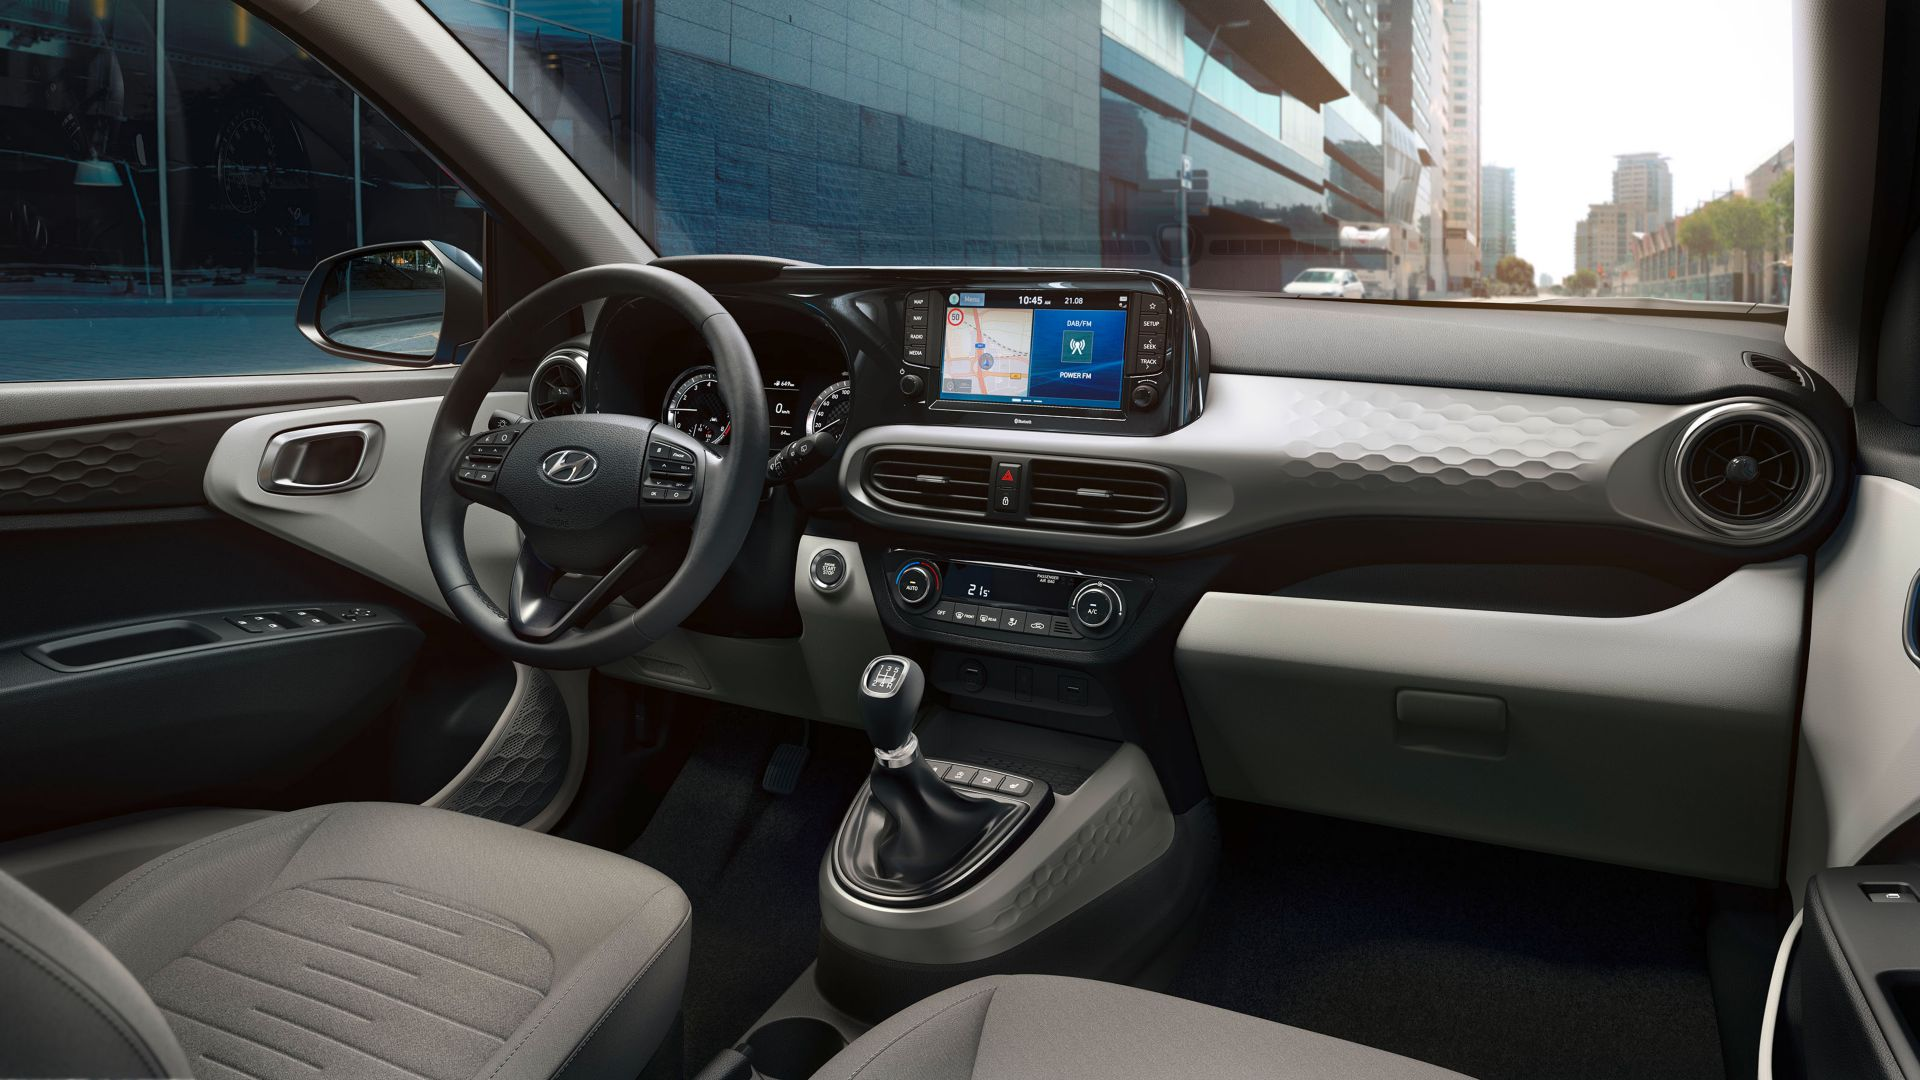 Photo of the interior of the all-new Hyundai i10.